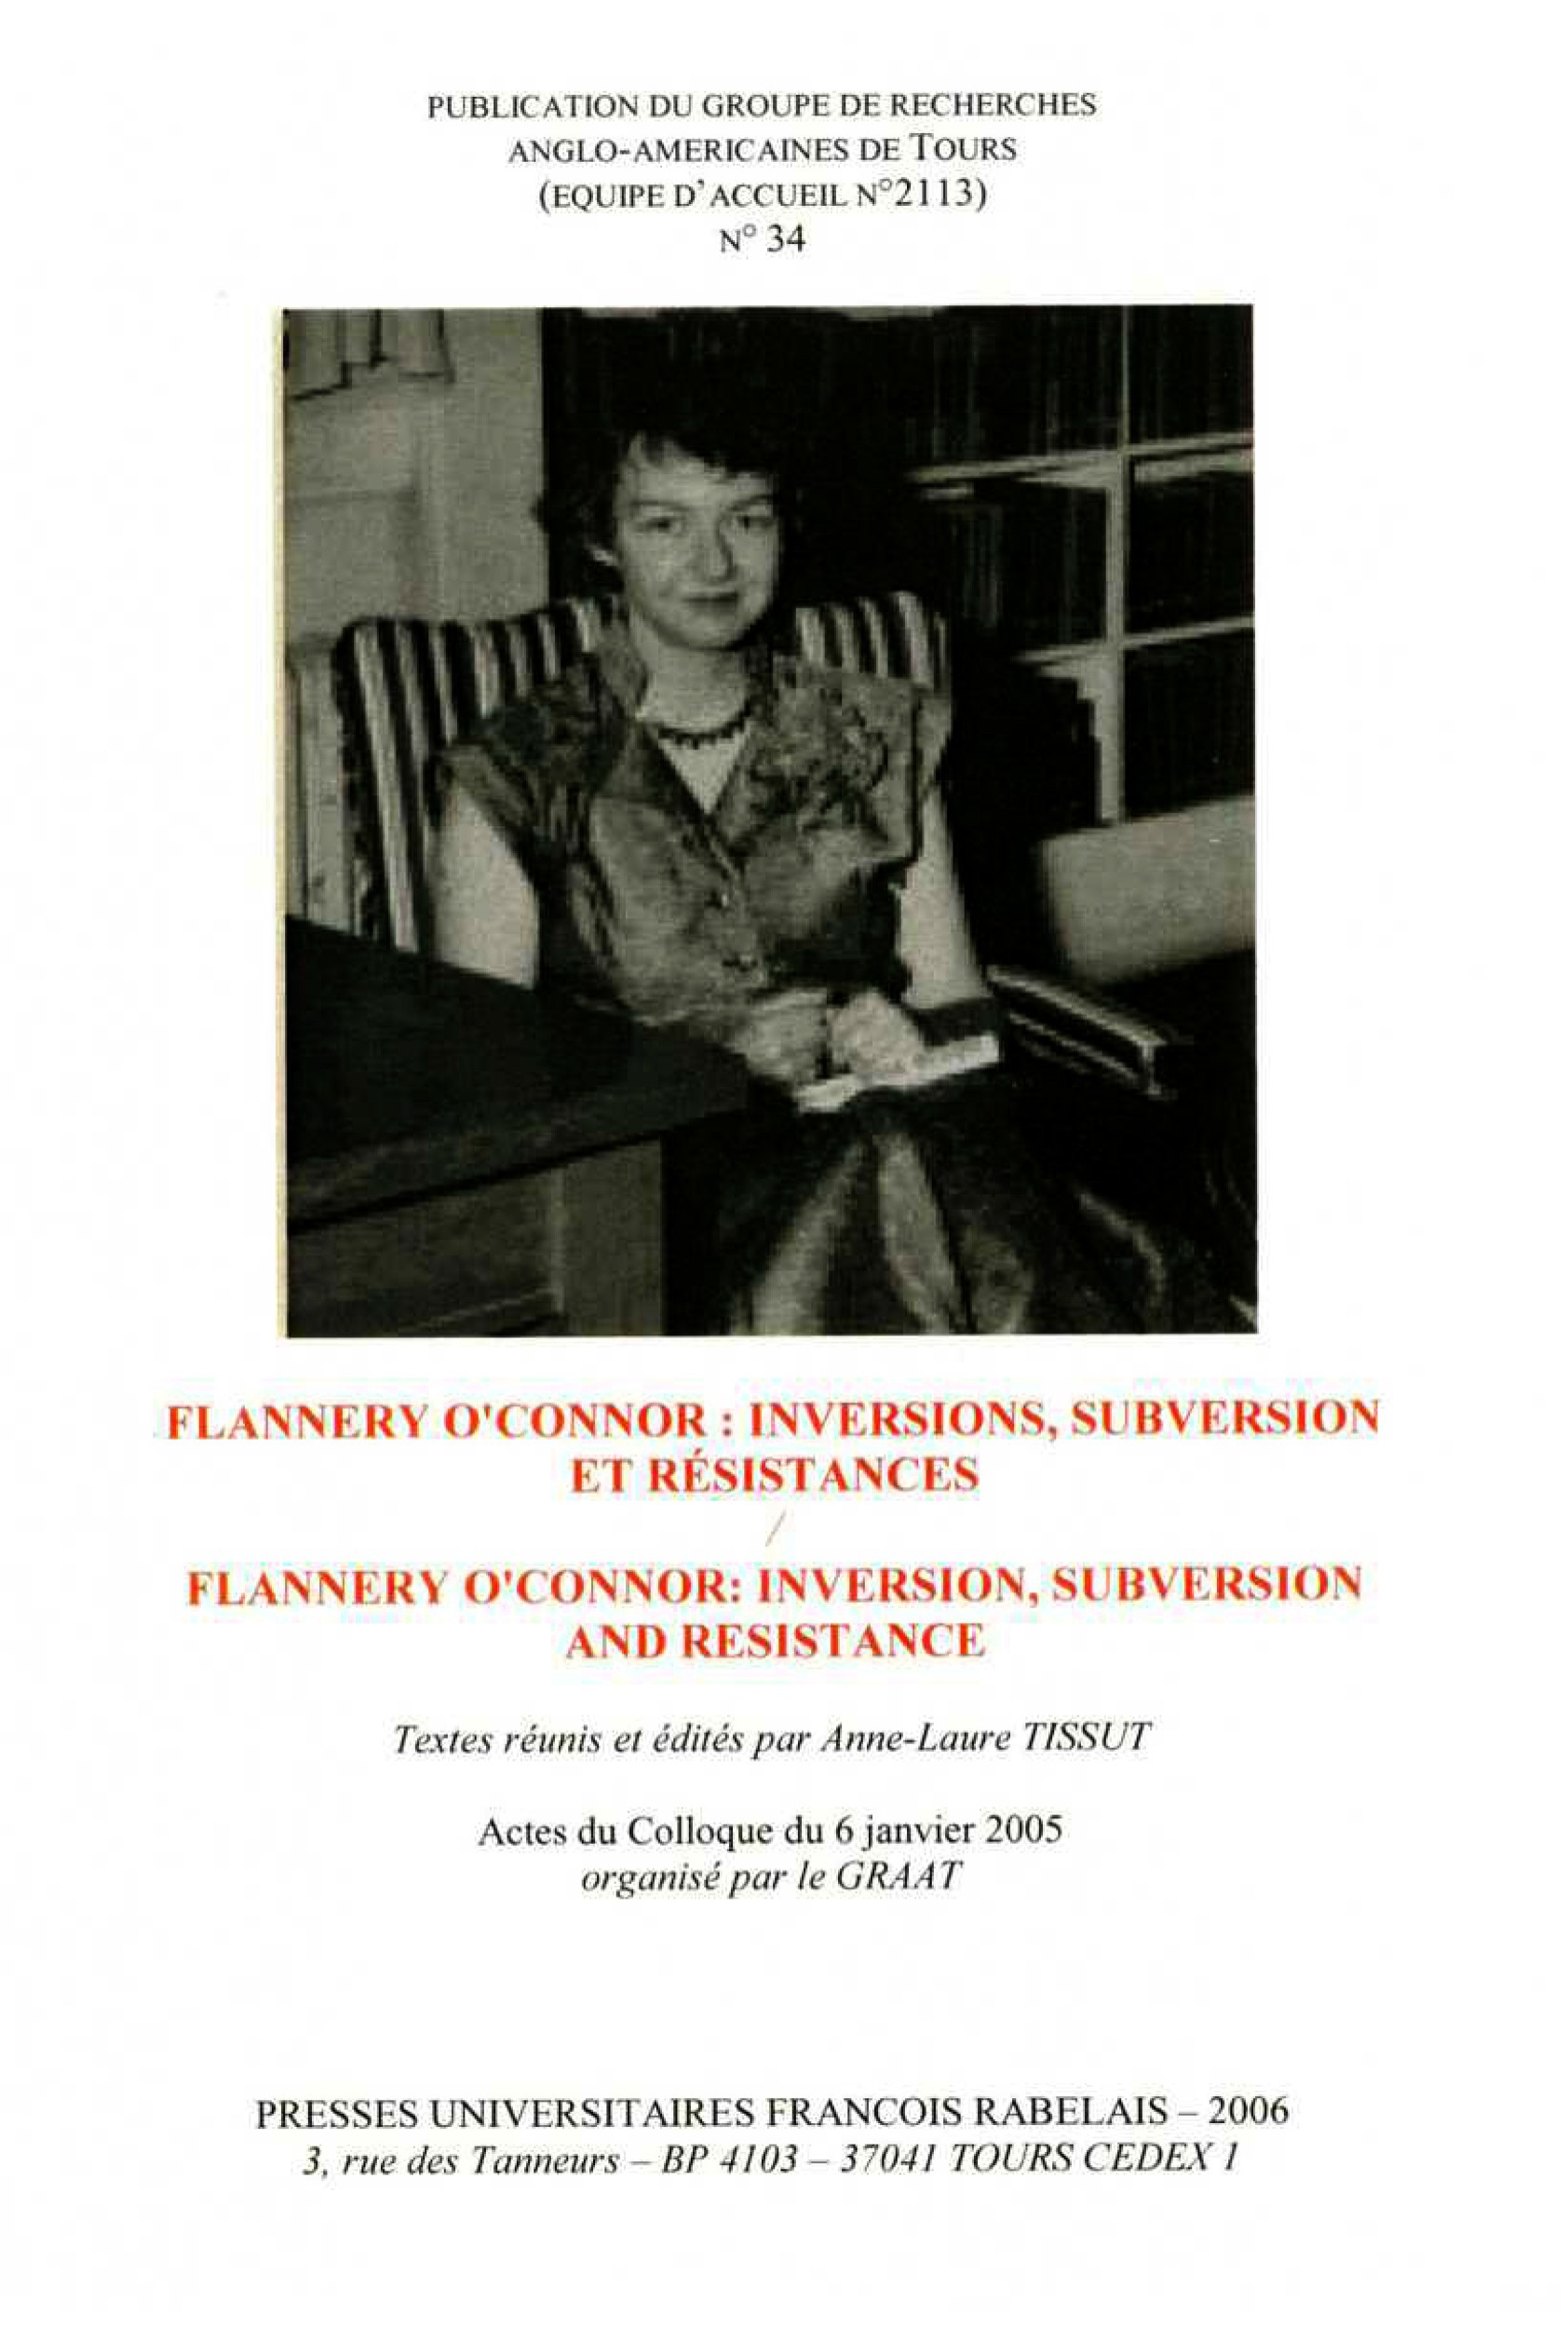 Flannery O'Connor : inversions, subversion et résistances / Inversion, Subversion and Resistance  - Anne-Laure Tissut